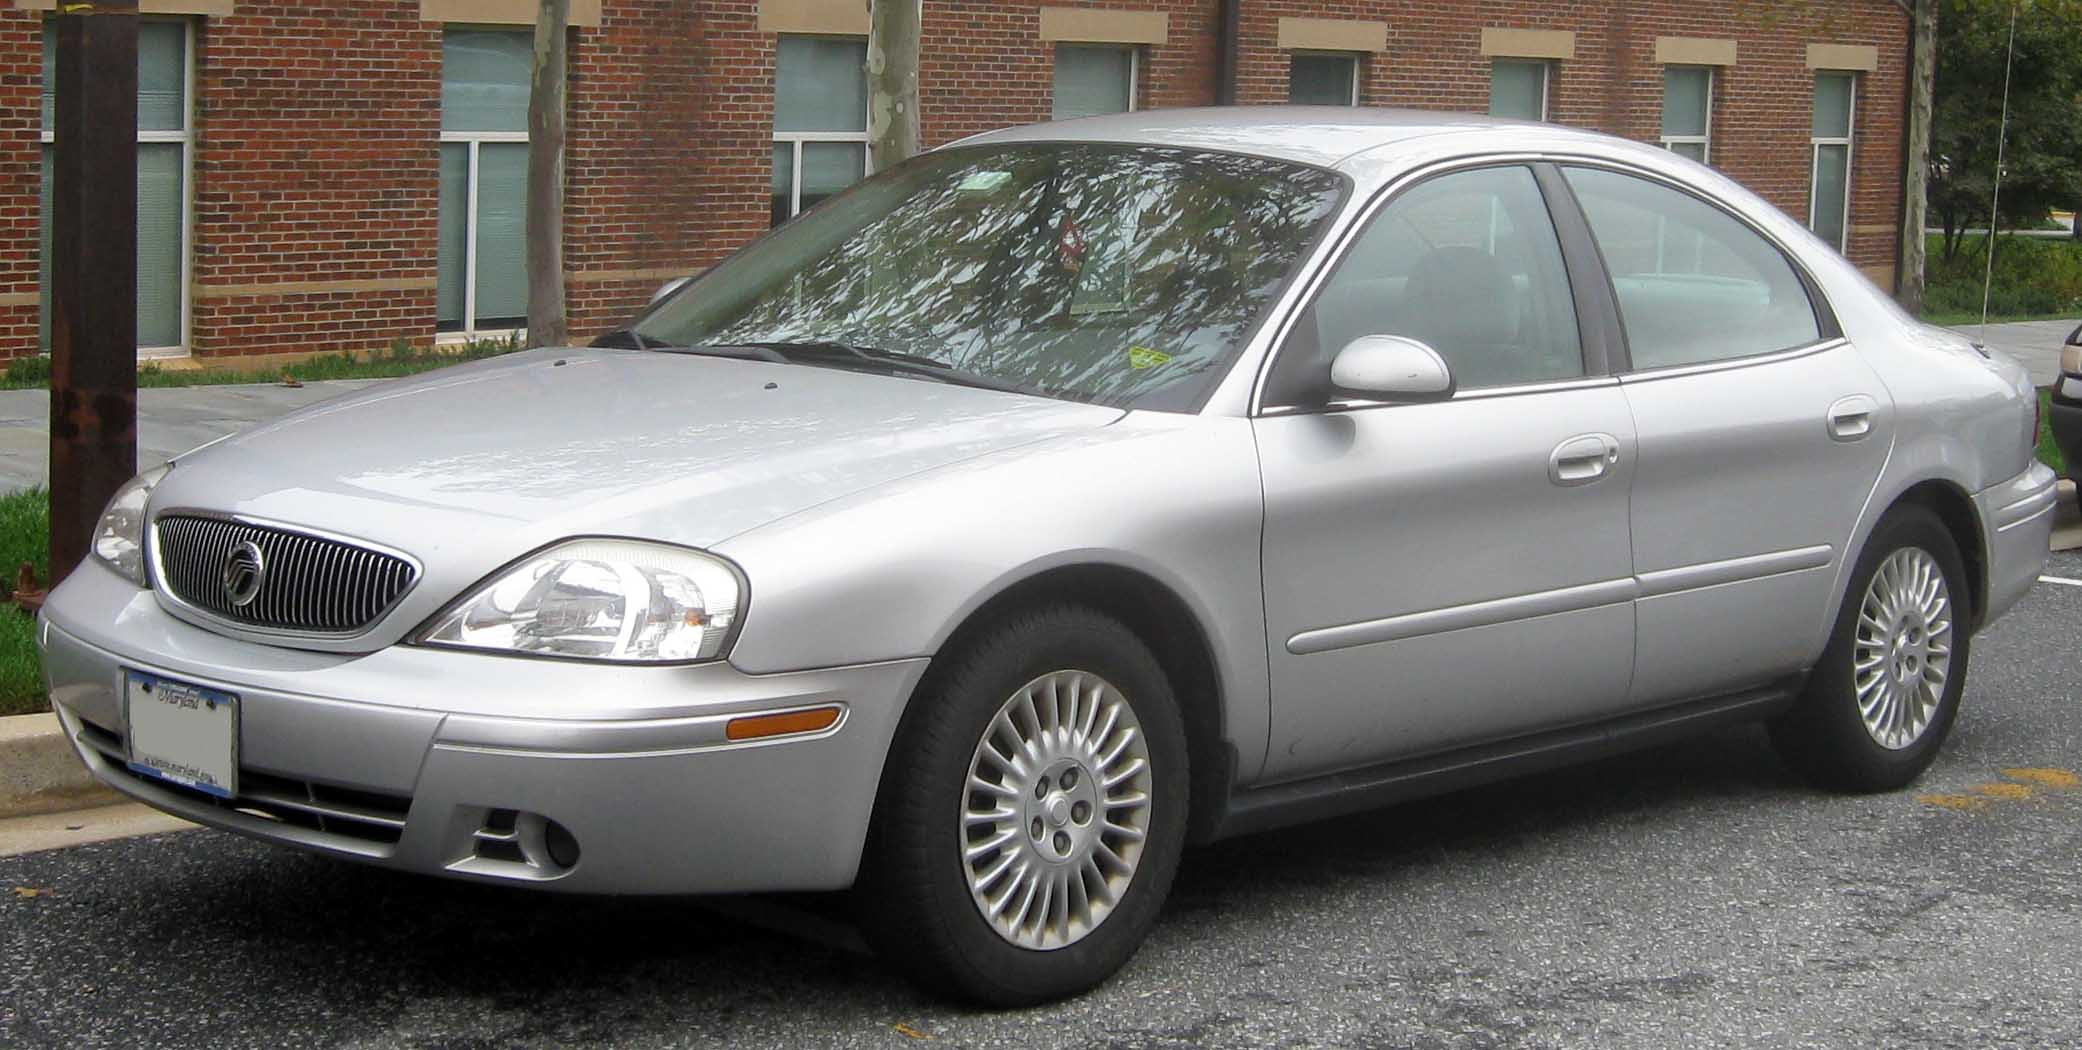 Mercury sable photo - 4